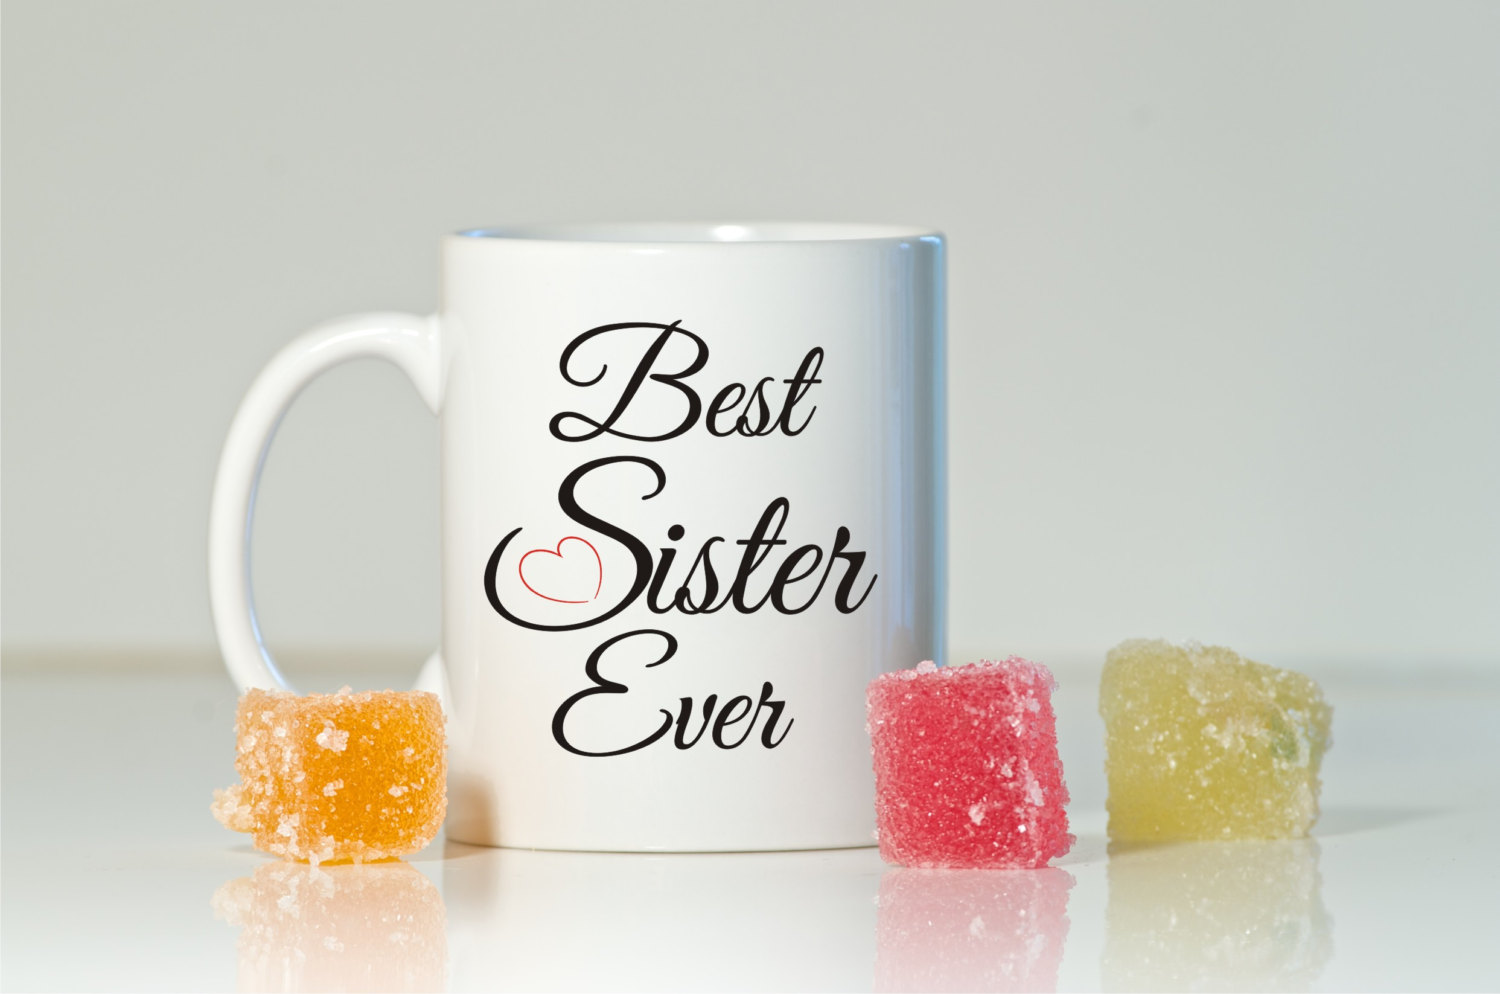 What to give your sister for birthday - gift lists 26